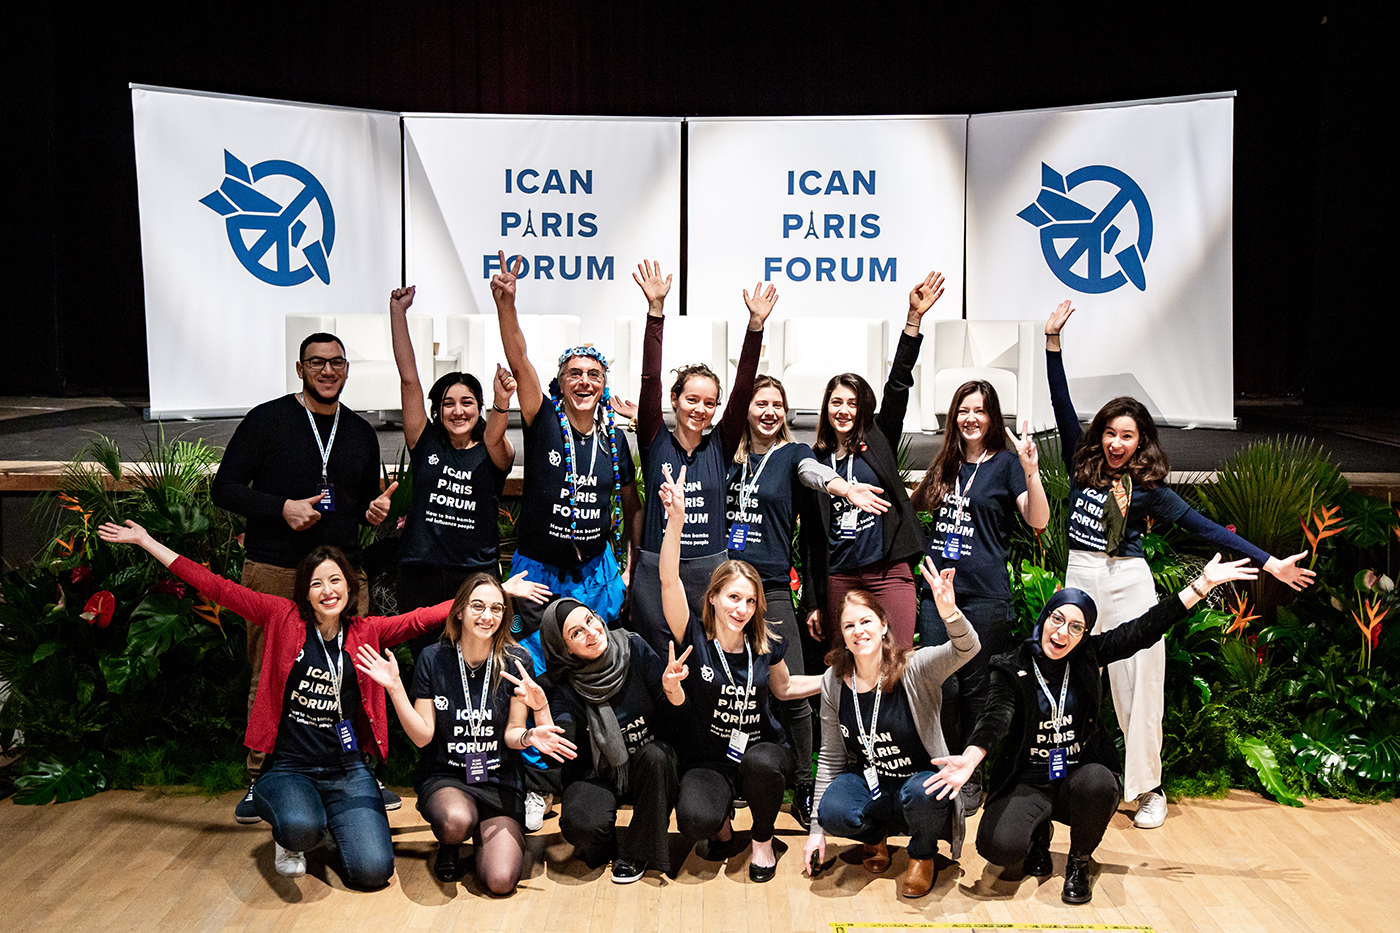 ICAN_Supporters_body_pic.jpg